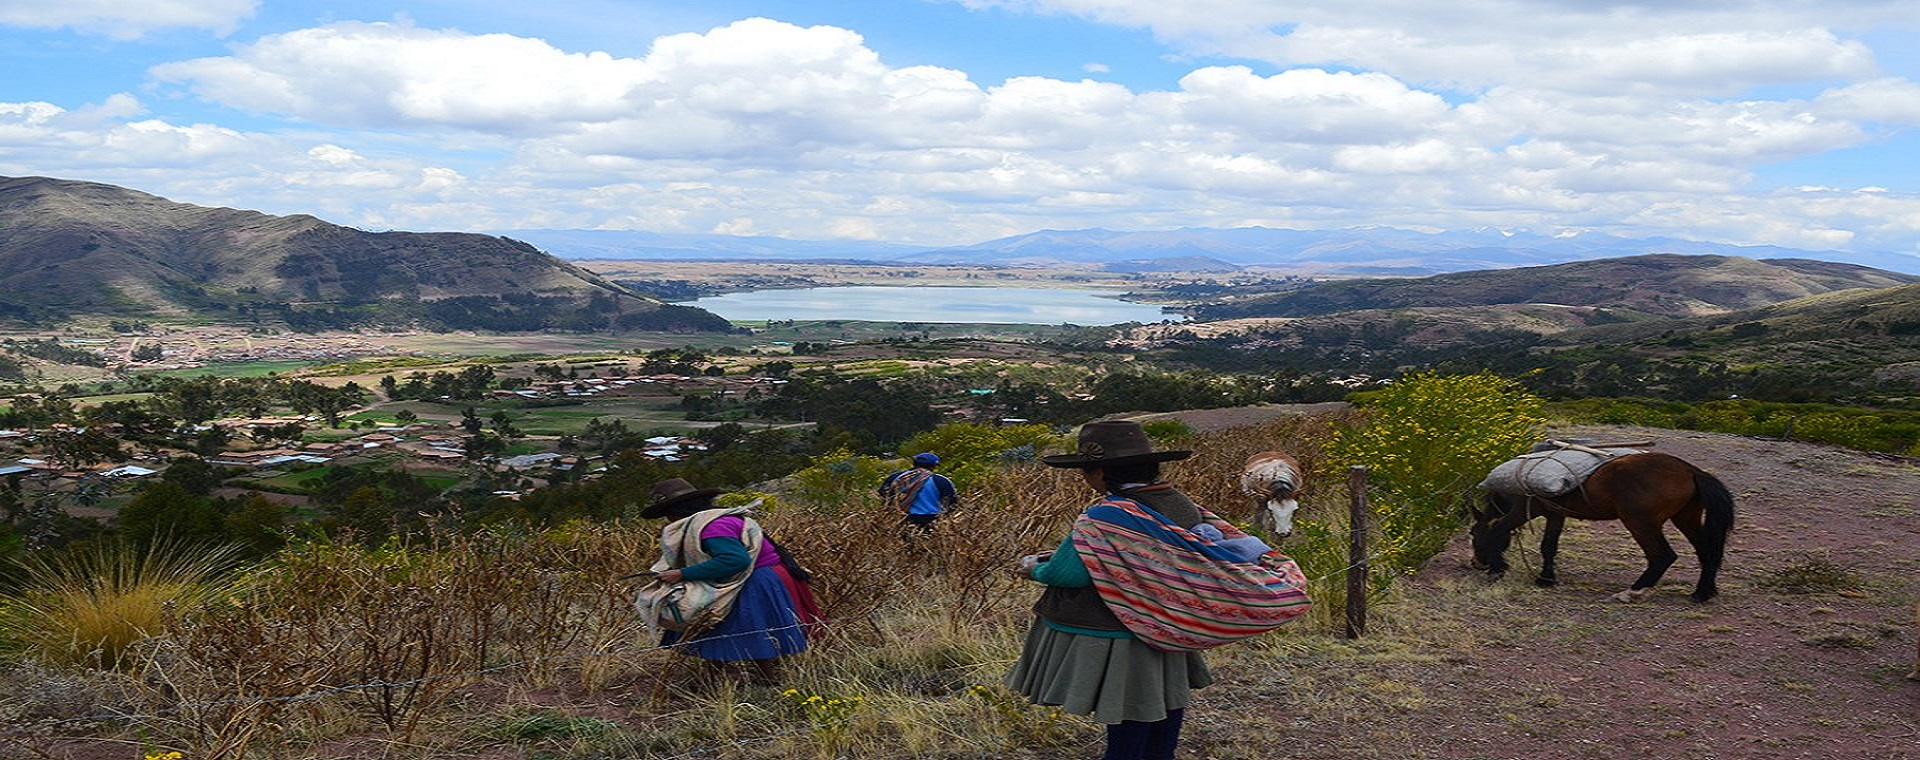 At the Meeting of the Quechua People